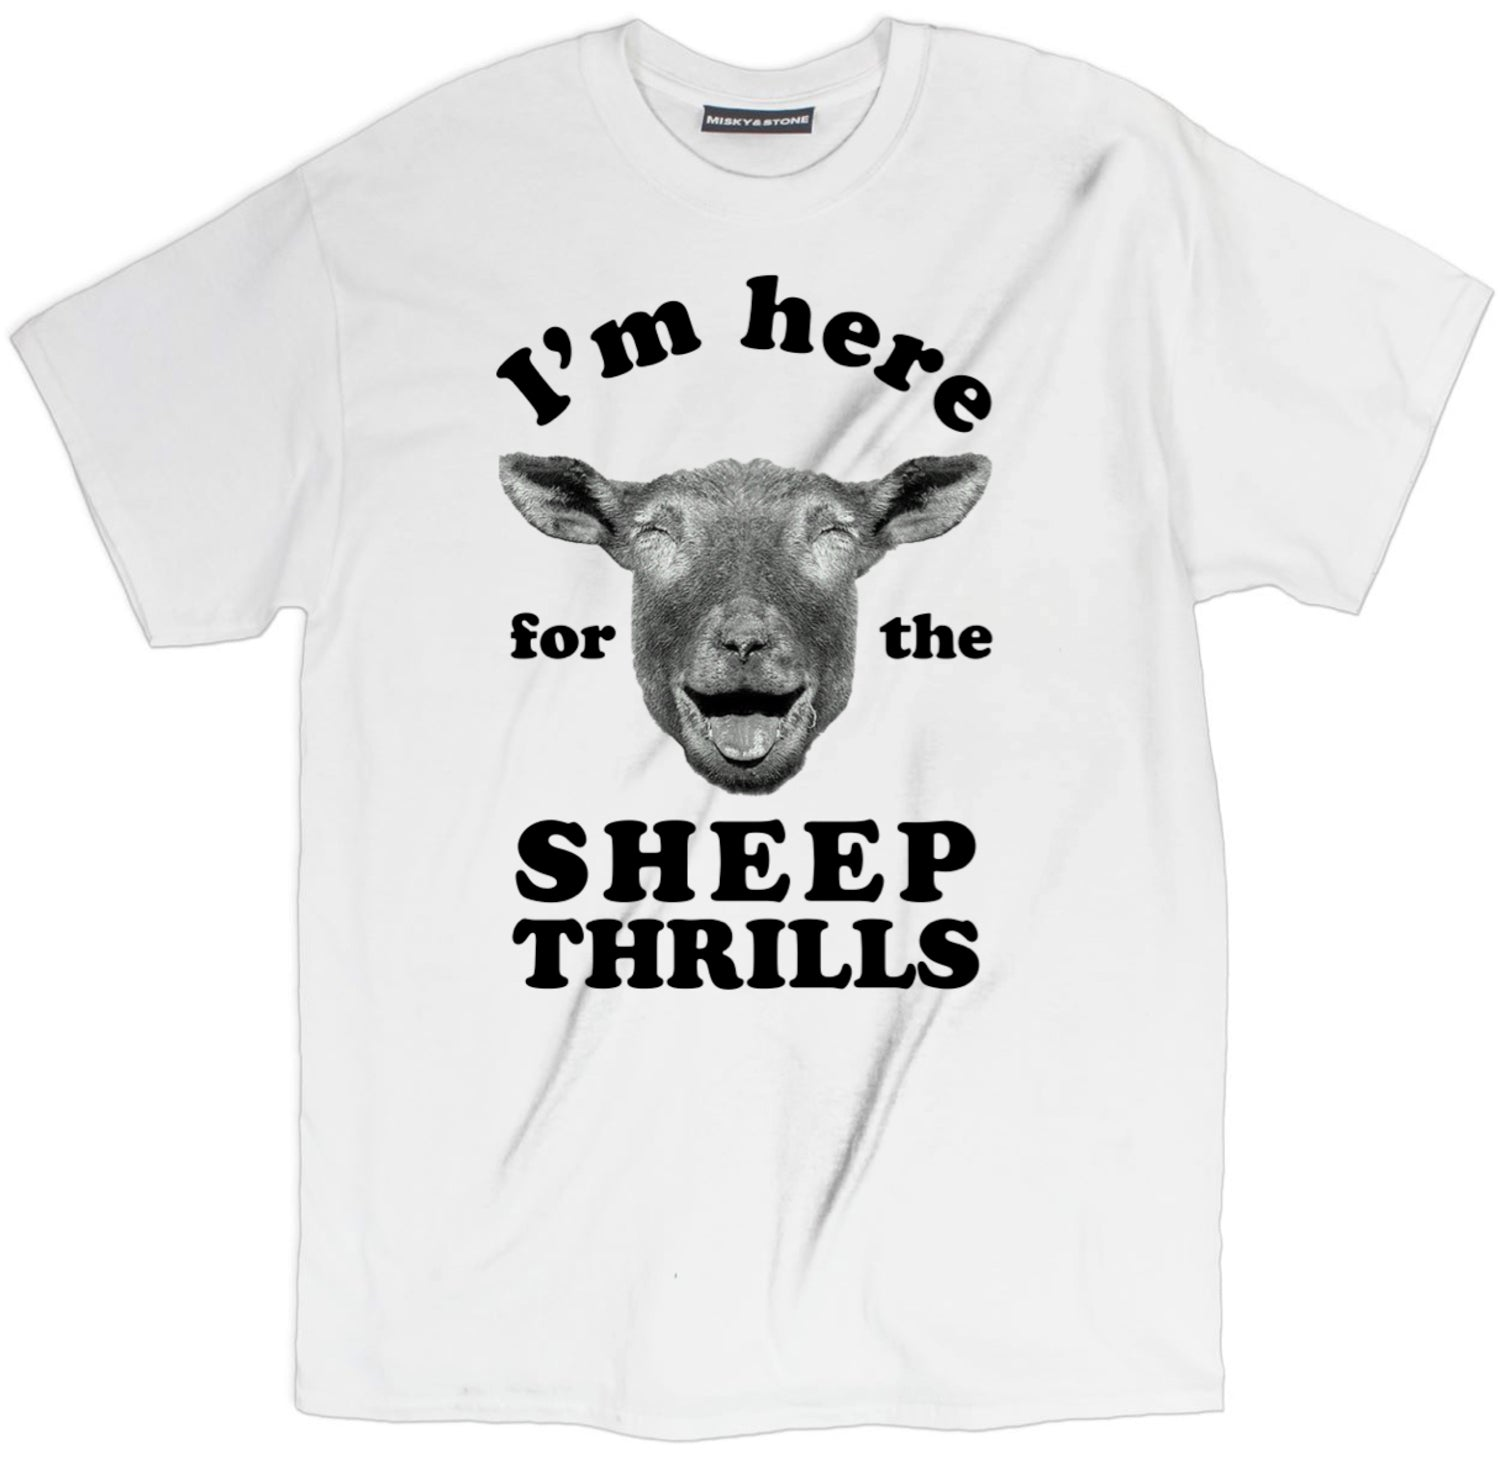 im here for the sheep thrills t shirt, sheep t shirt, funny sheep tee, animal lovers shirts, funny animal shirts, animal shirts, animal t shirts, animal tees, animal tee shirts, animal tee shirts, animal face t shirts, animal graphic tees, cool animal shirts